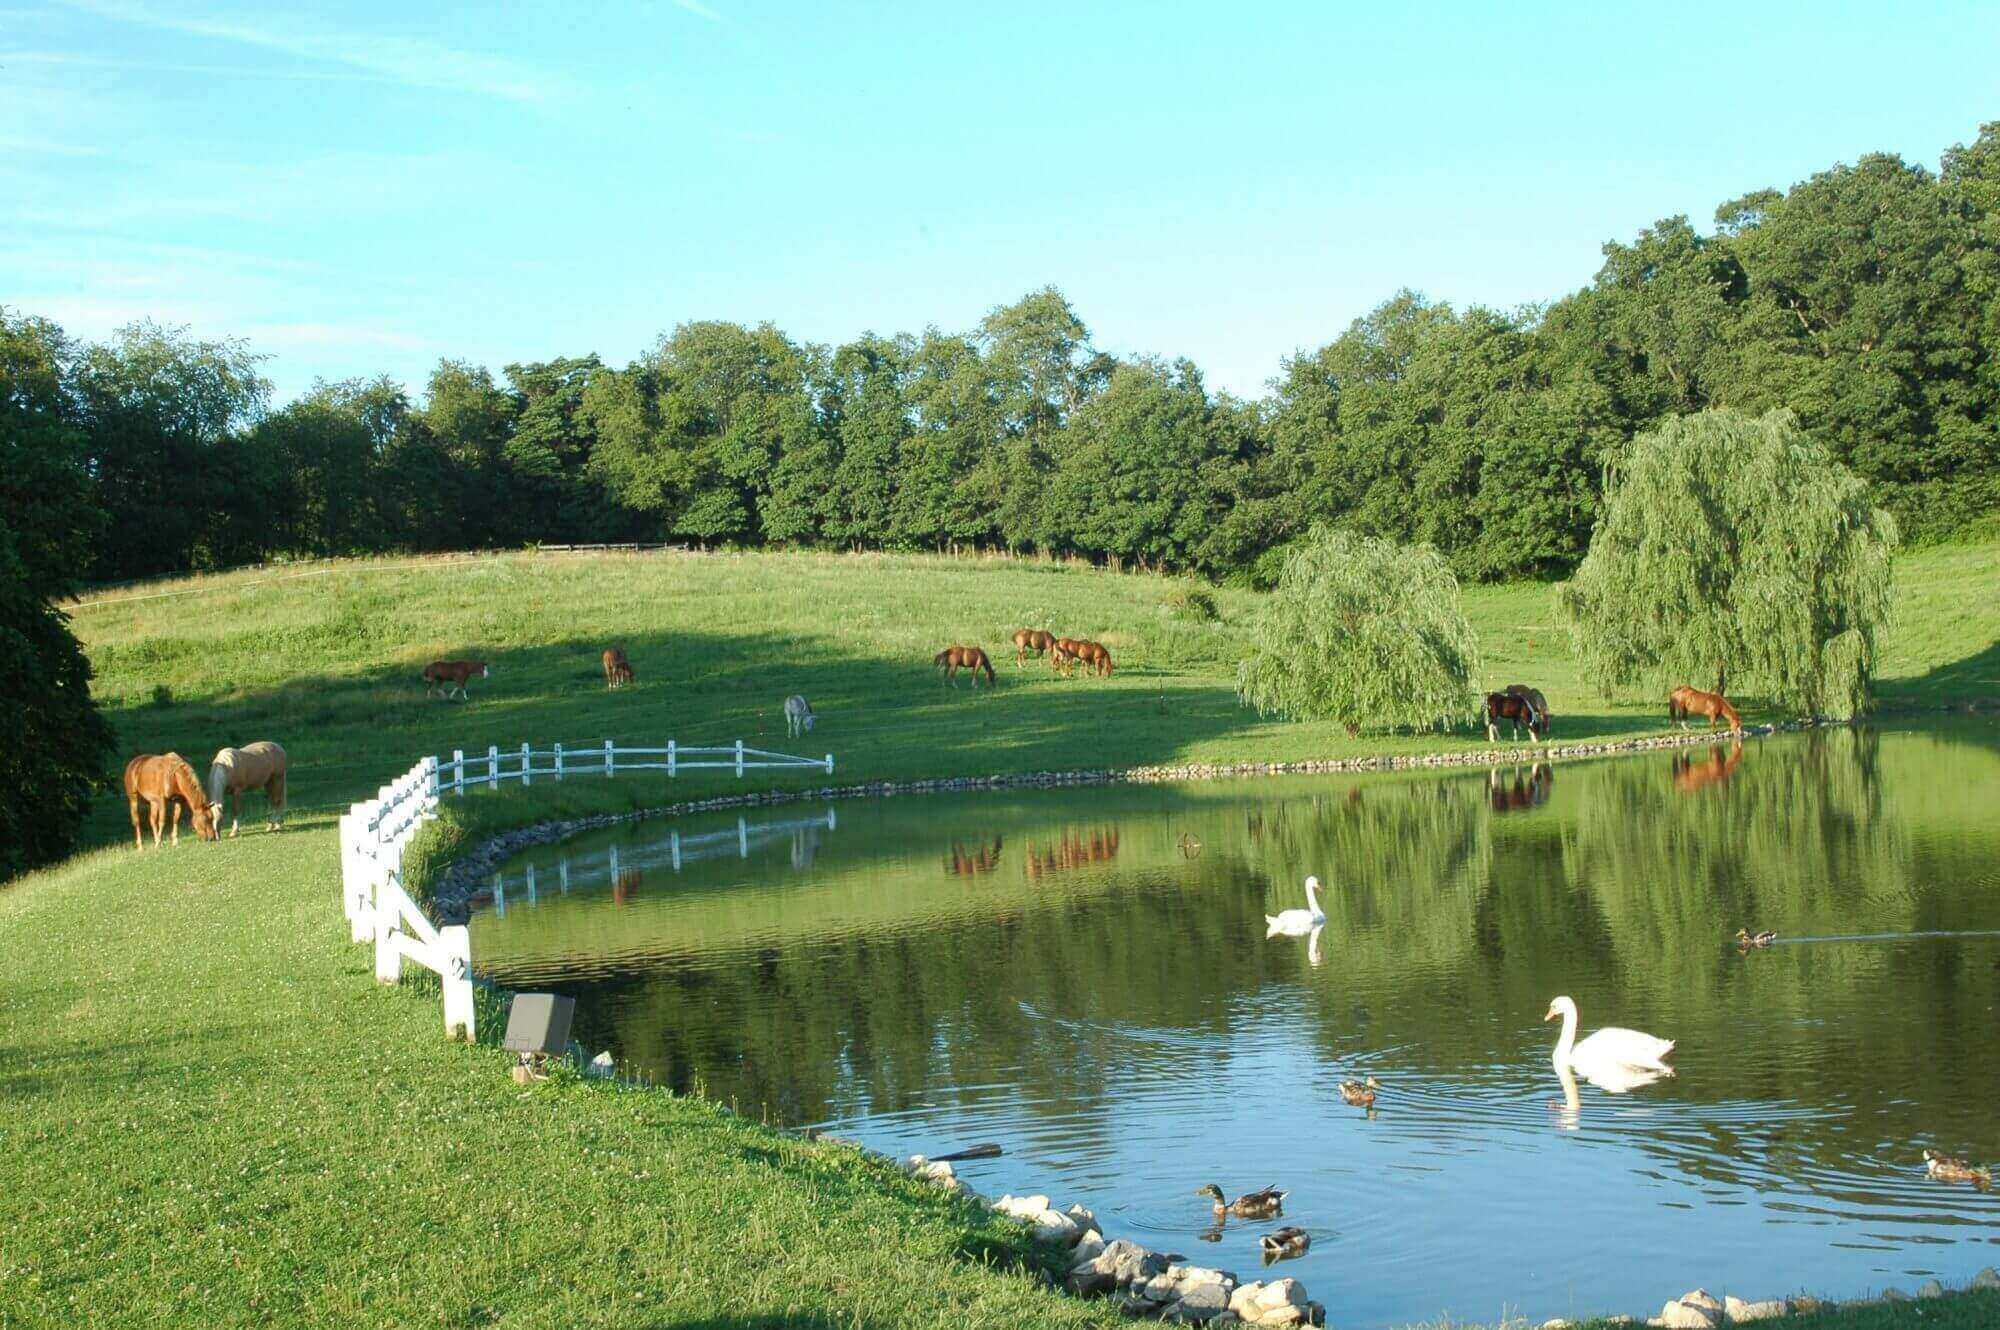 Trees line the edge of the photo. The area is grassy with a small white fence separating the land from a pond. Horses are grazing and water fowl are floating.